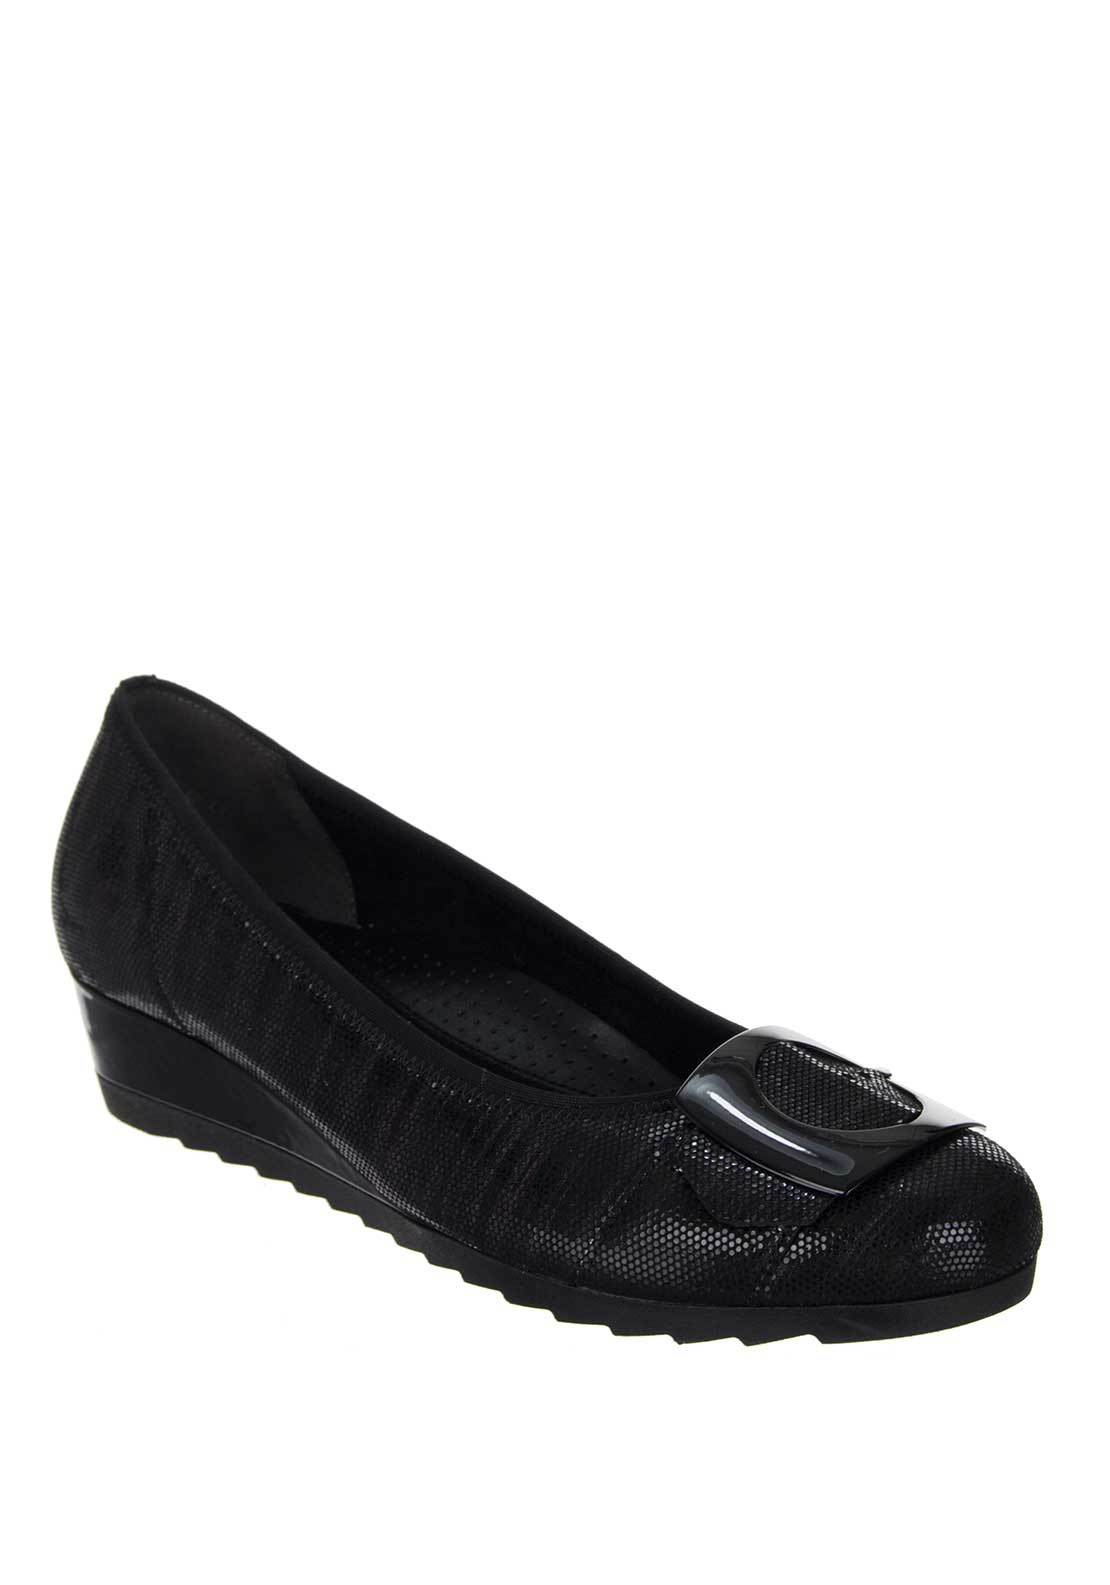 Gabor Cash Womens Casual Shoe, Black